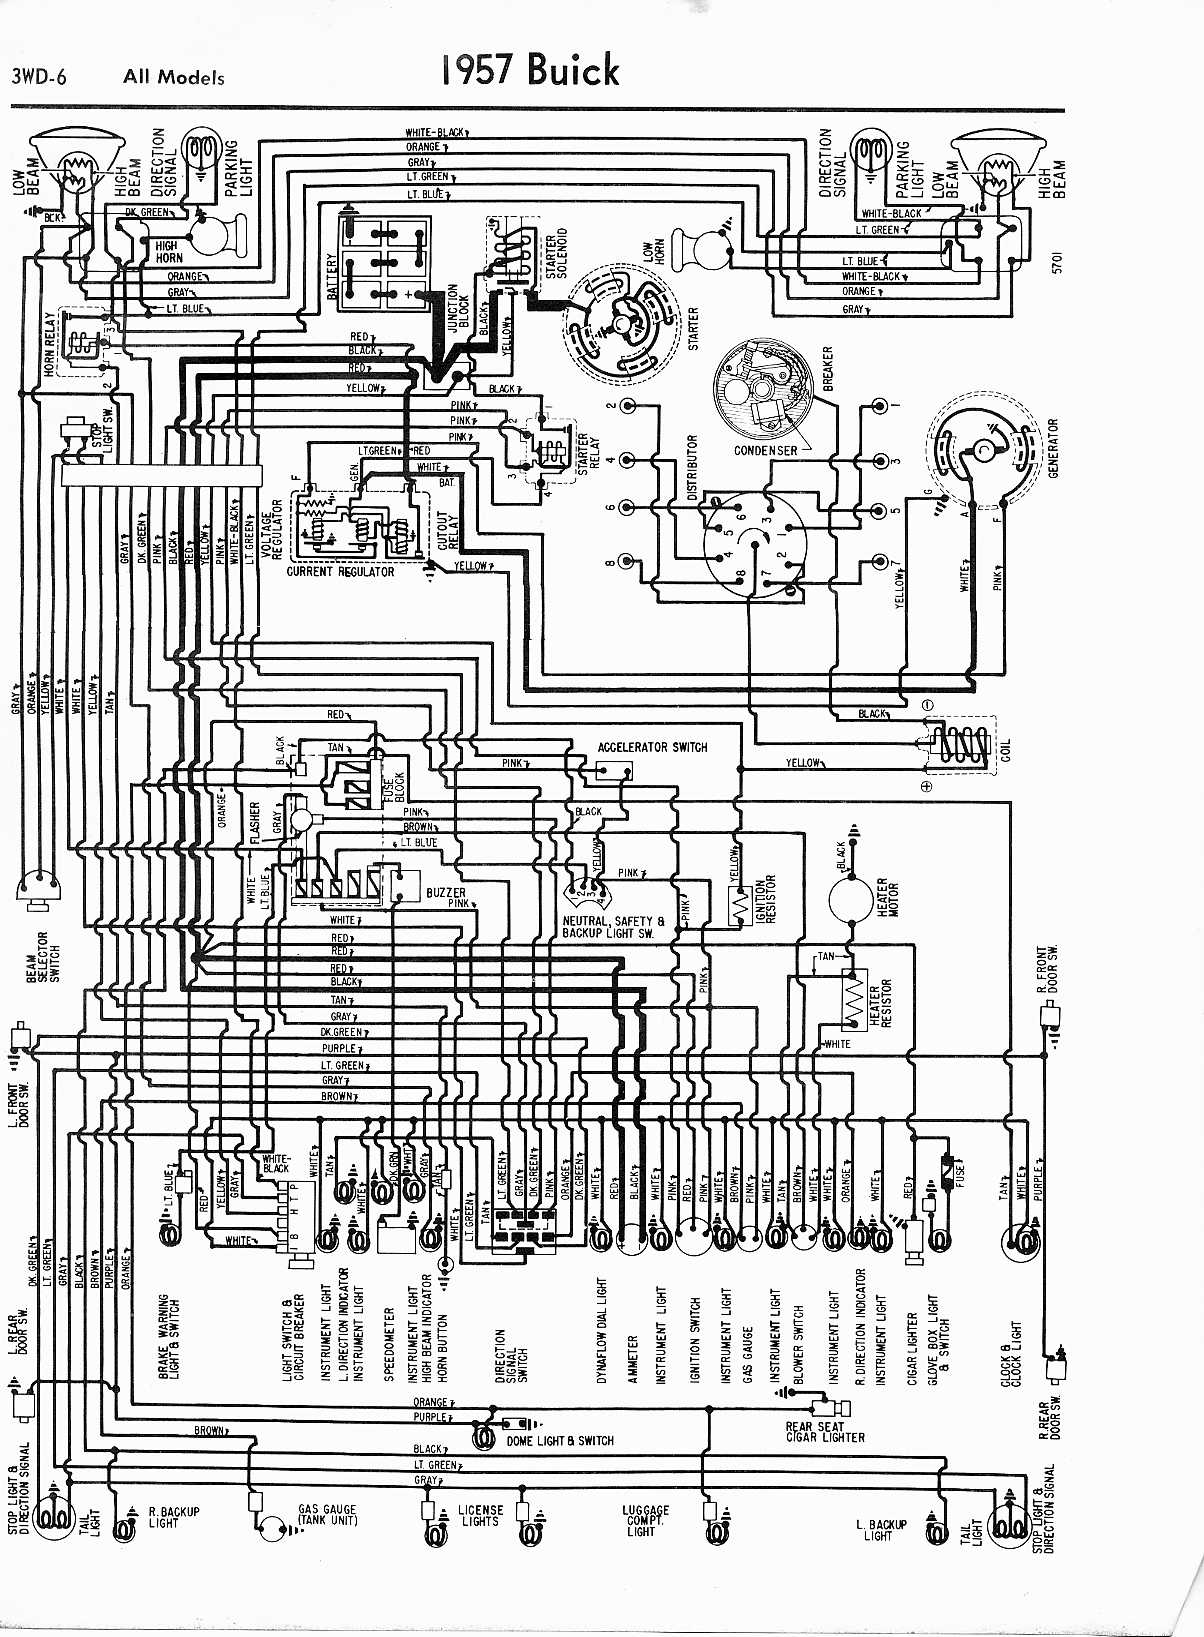 MWireBuic65_3WD 006 buick wiring diagrams 1957 1965 1957 oldsmobile wiring diagram at beritabola.co